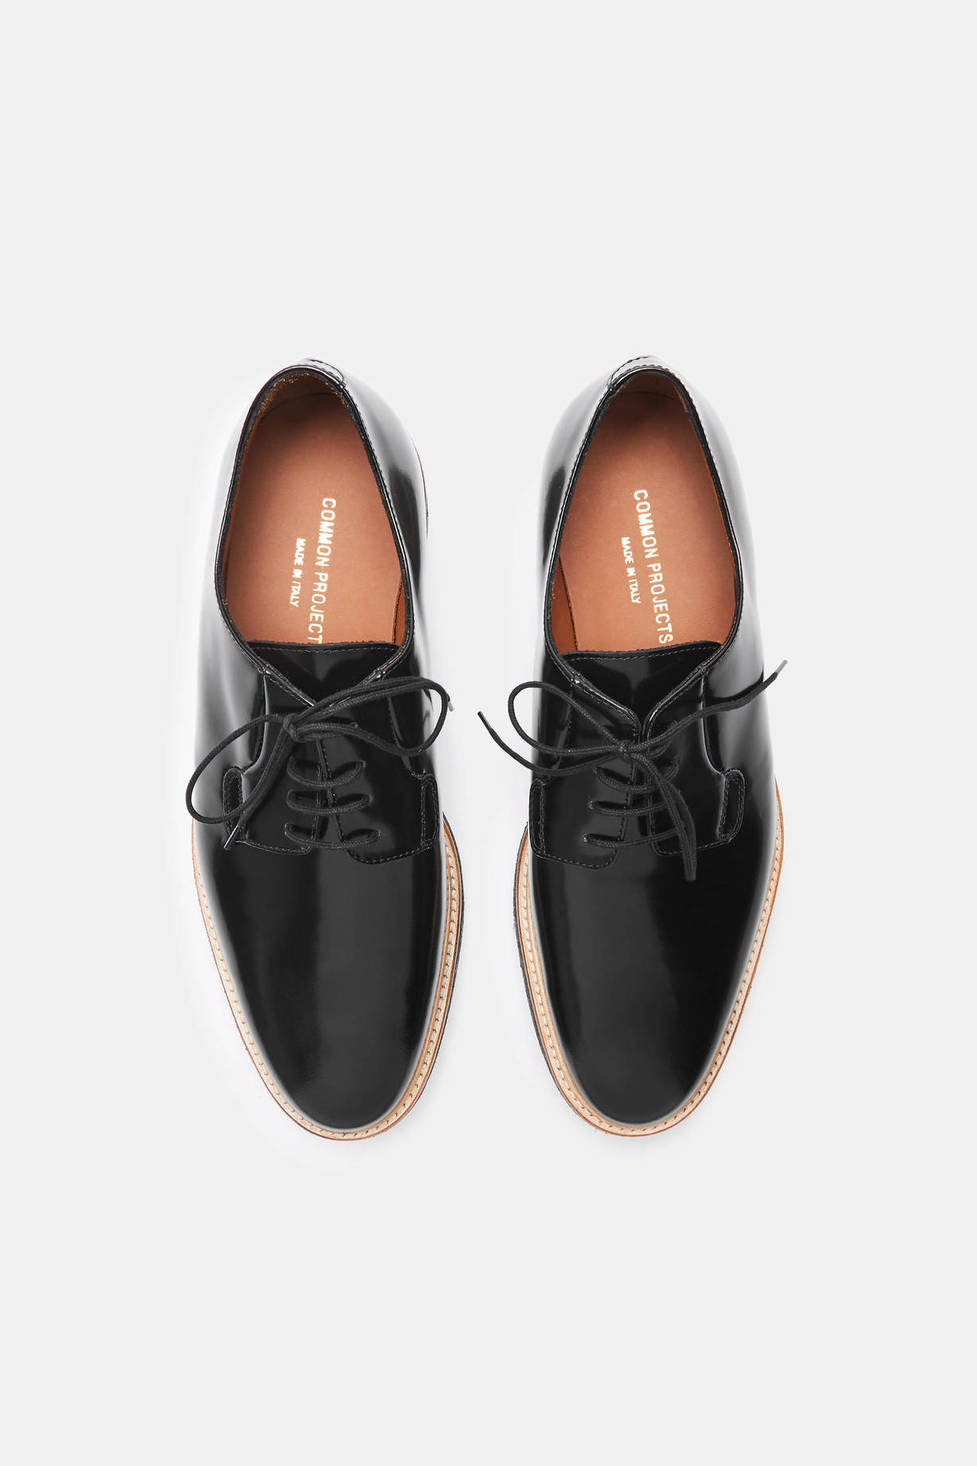 Common Projects Derby Shine - Black $524